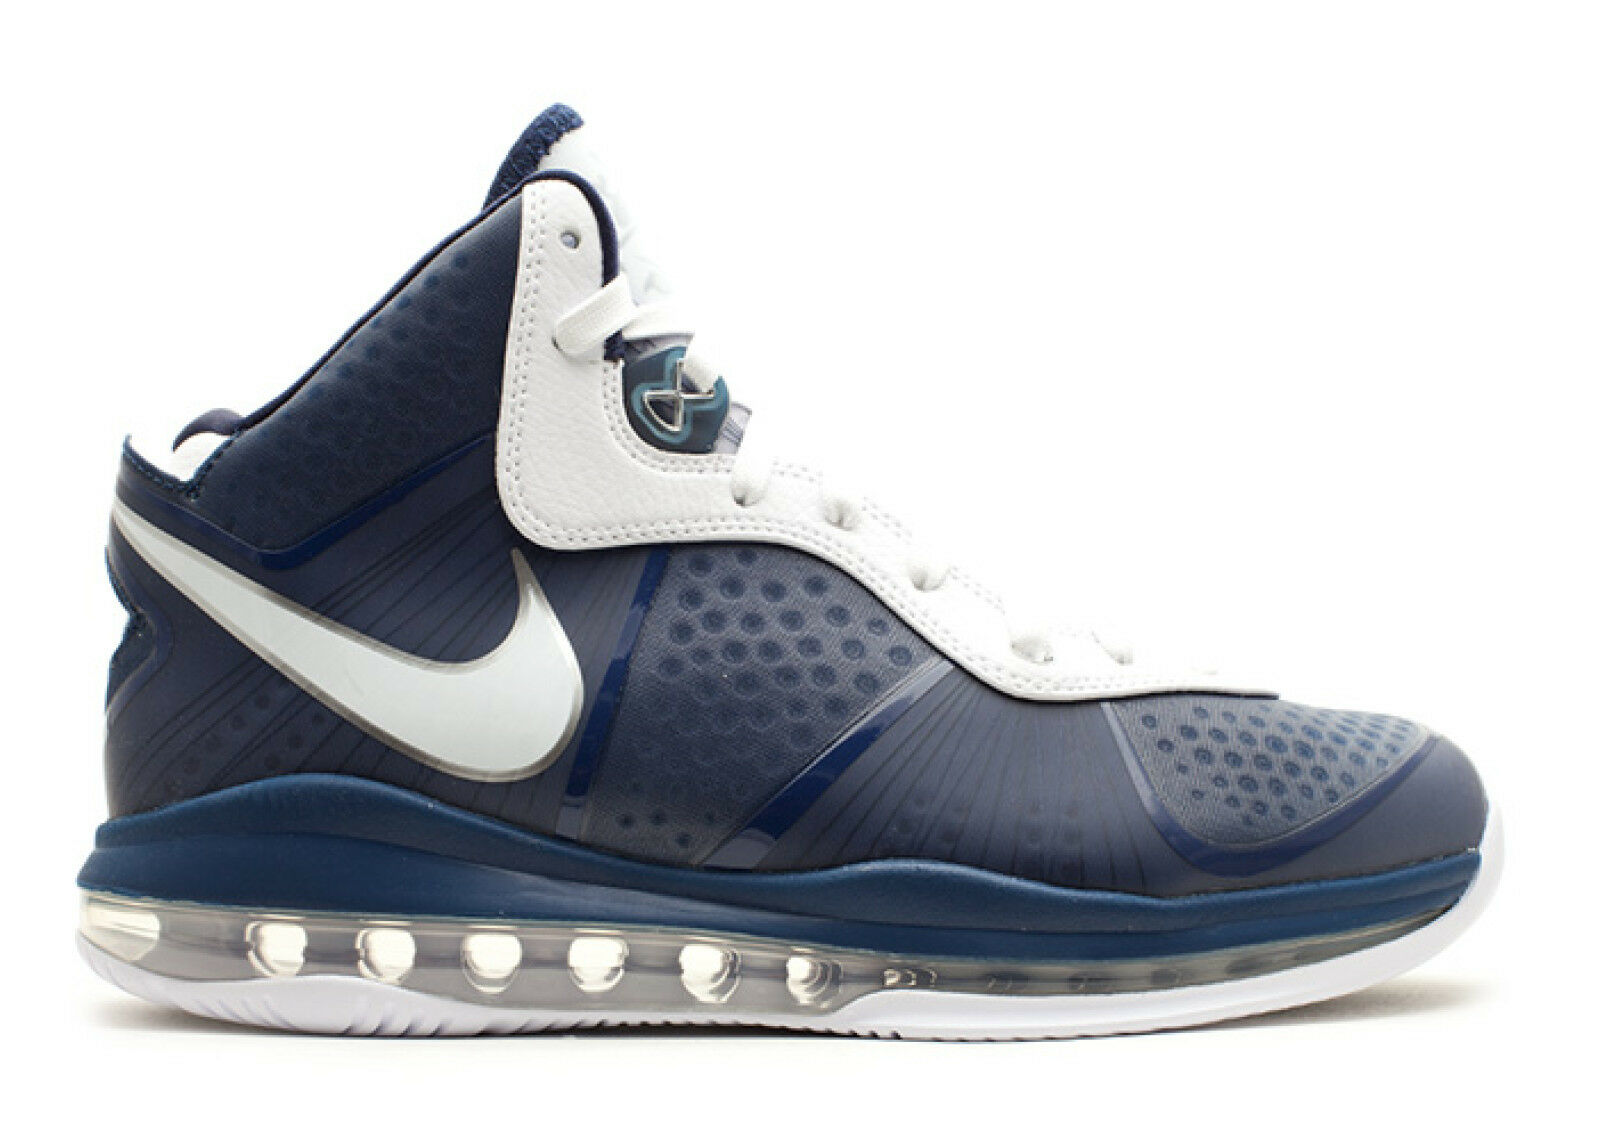 Nike LeBron 8 V 2 New York Yankees Navy White Size 13. 429676-400